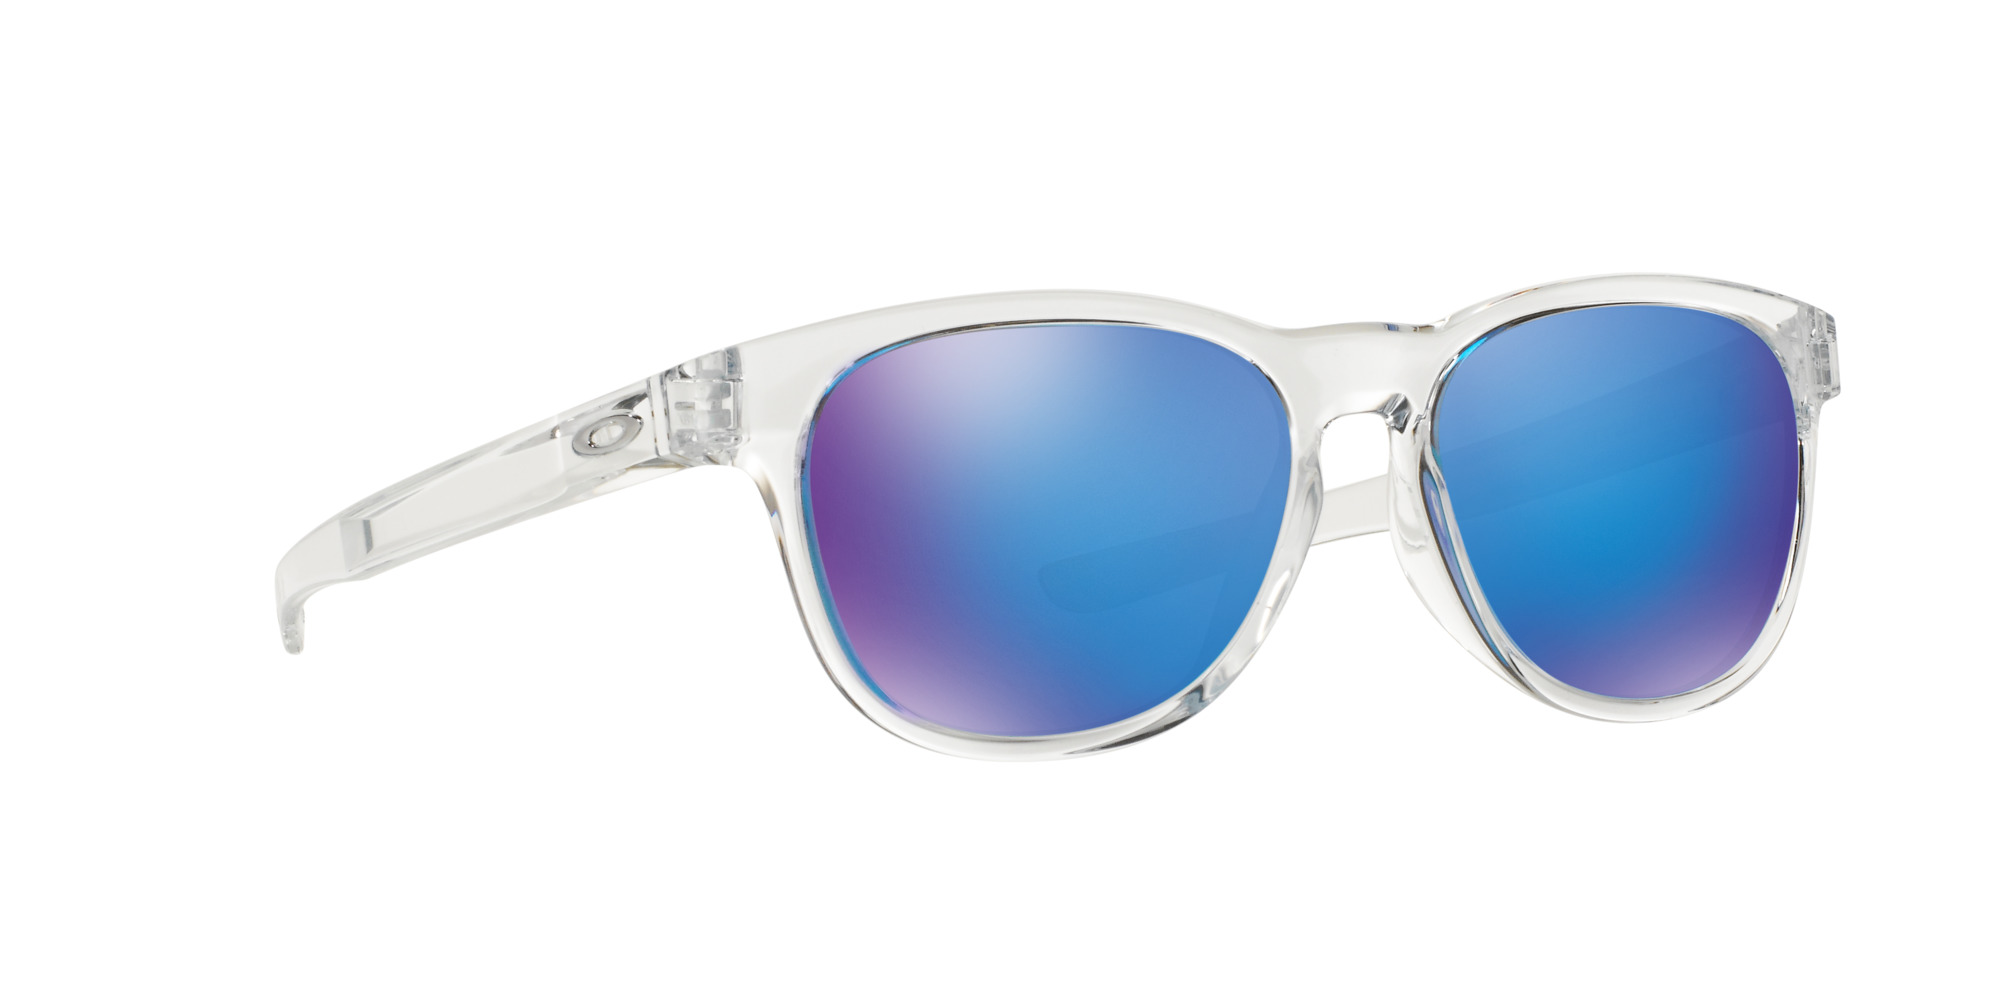 Oakley Blue Wayfarer Sunglasses - oo9315-06